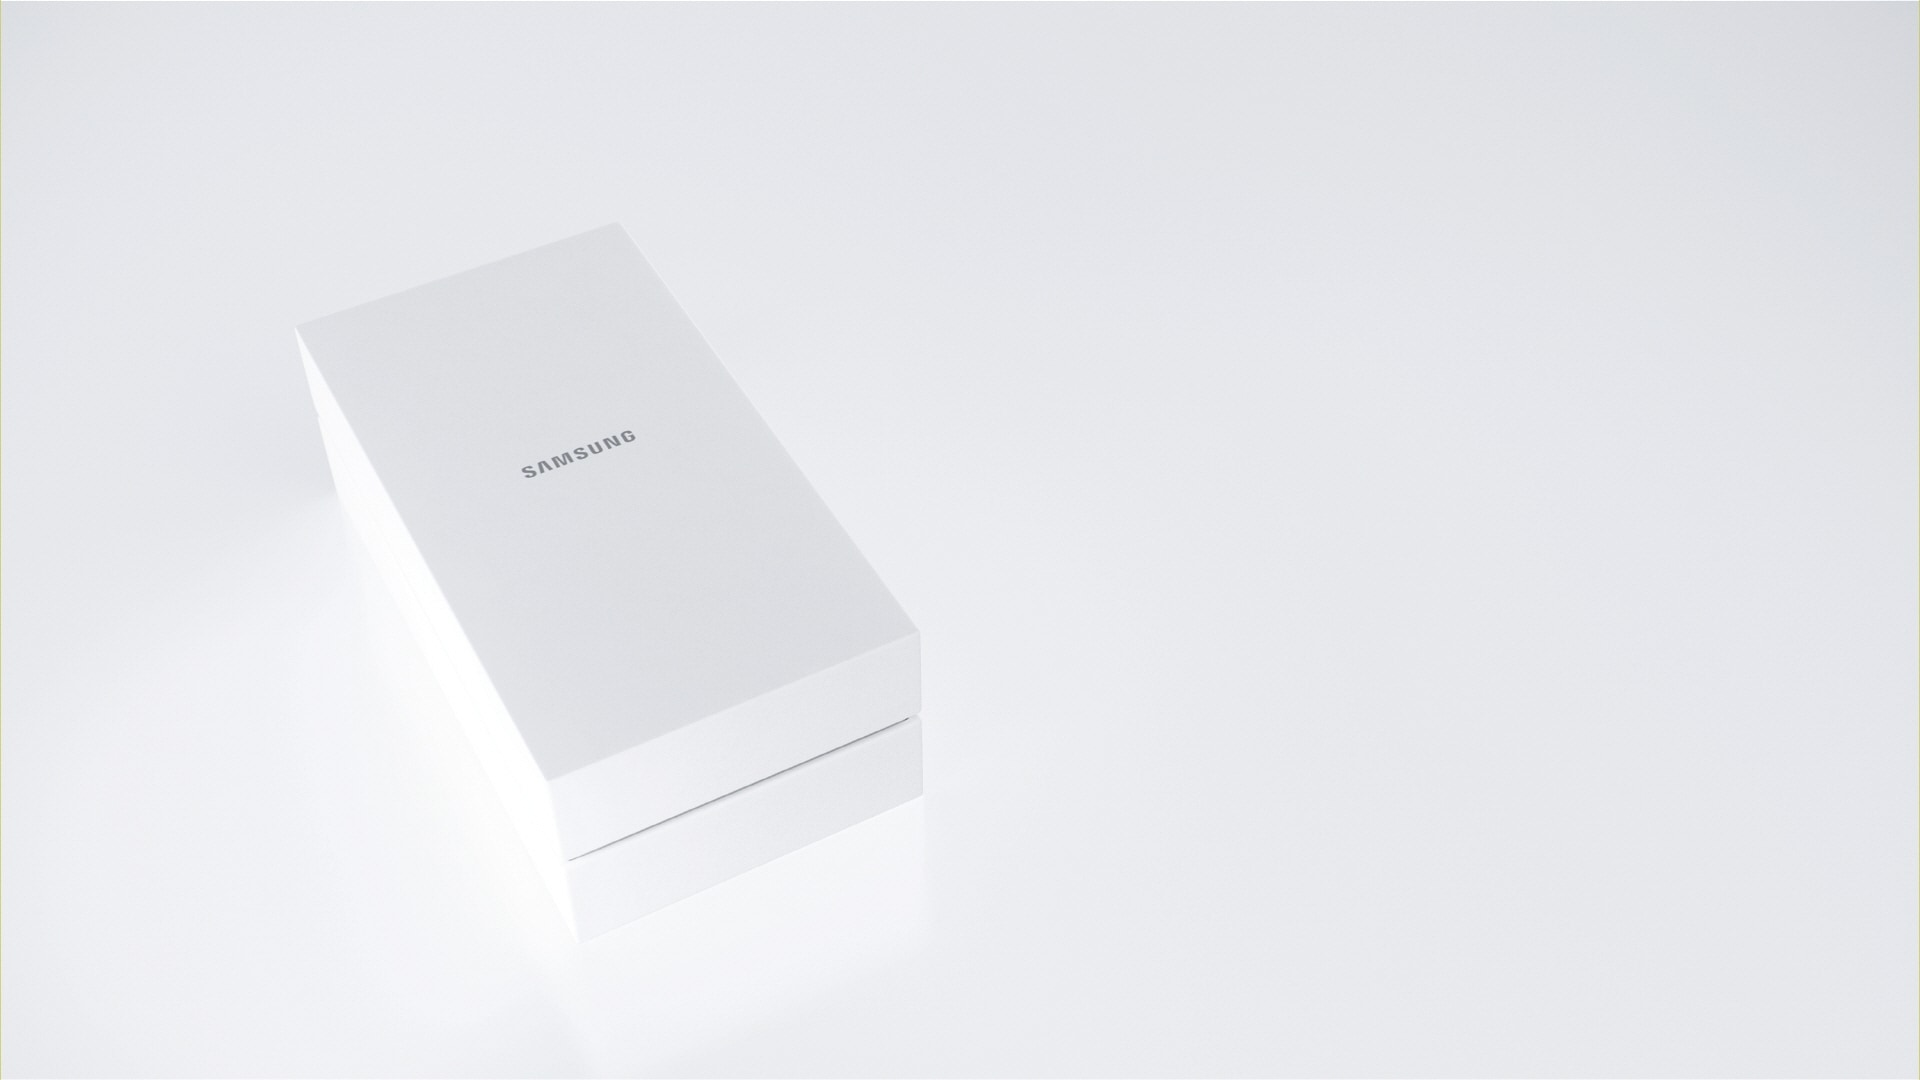 The animated sequence in which the Galaxy S6 edge comes out of the white box.